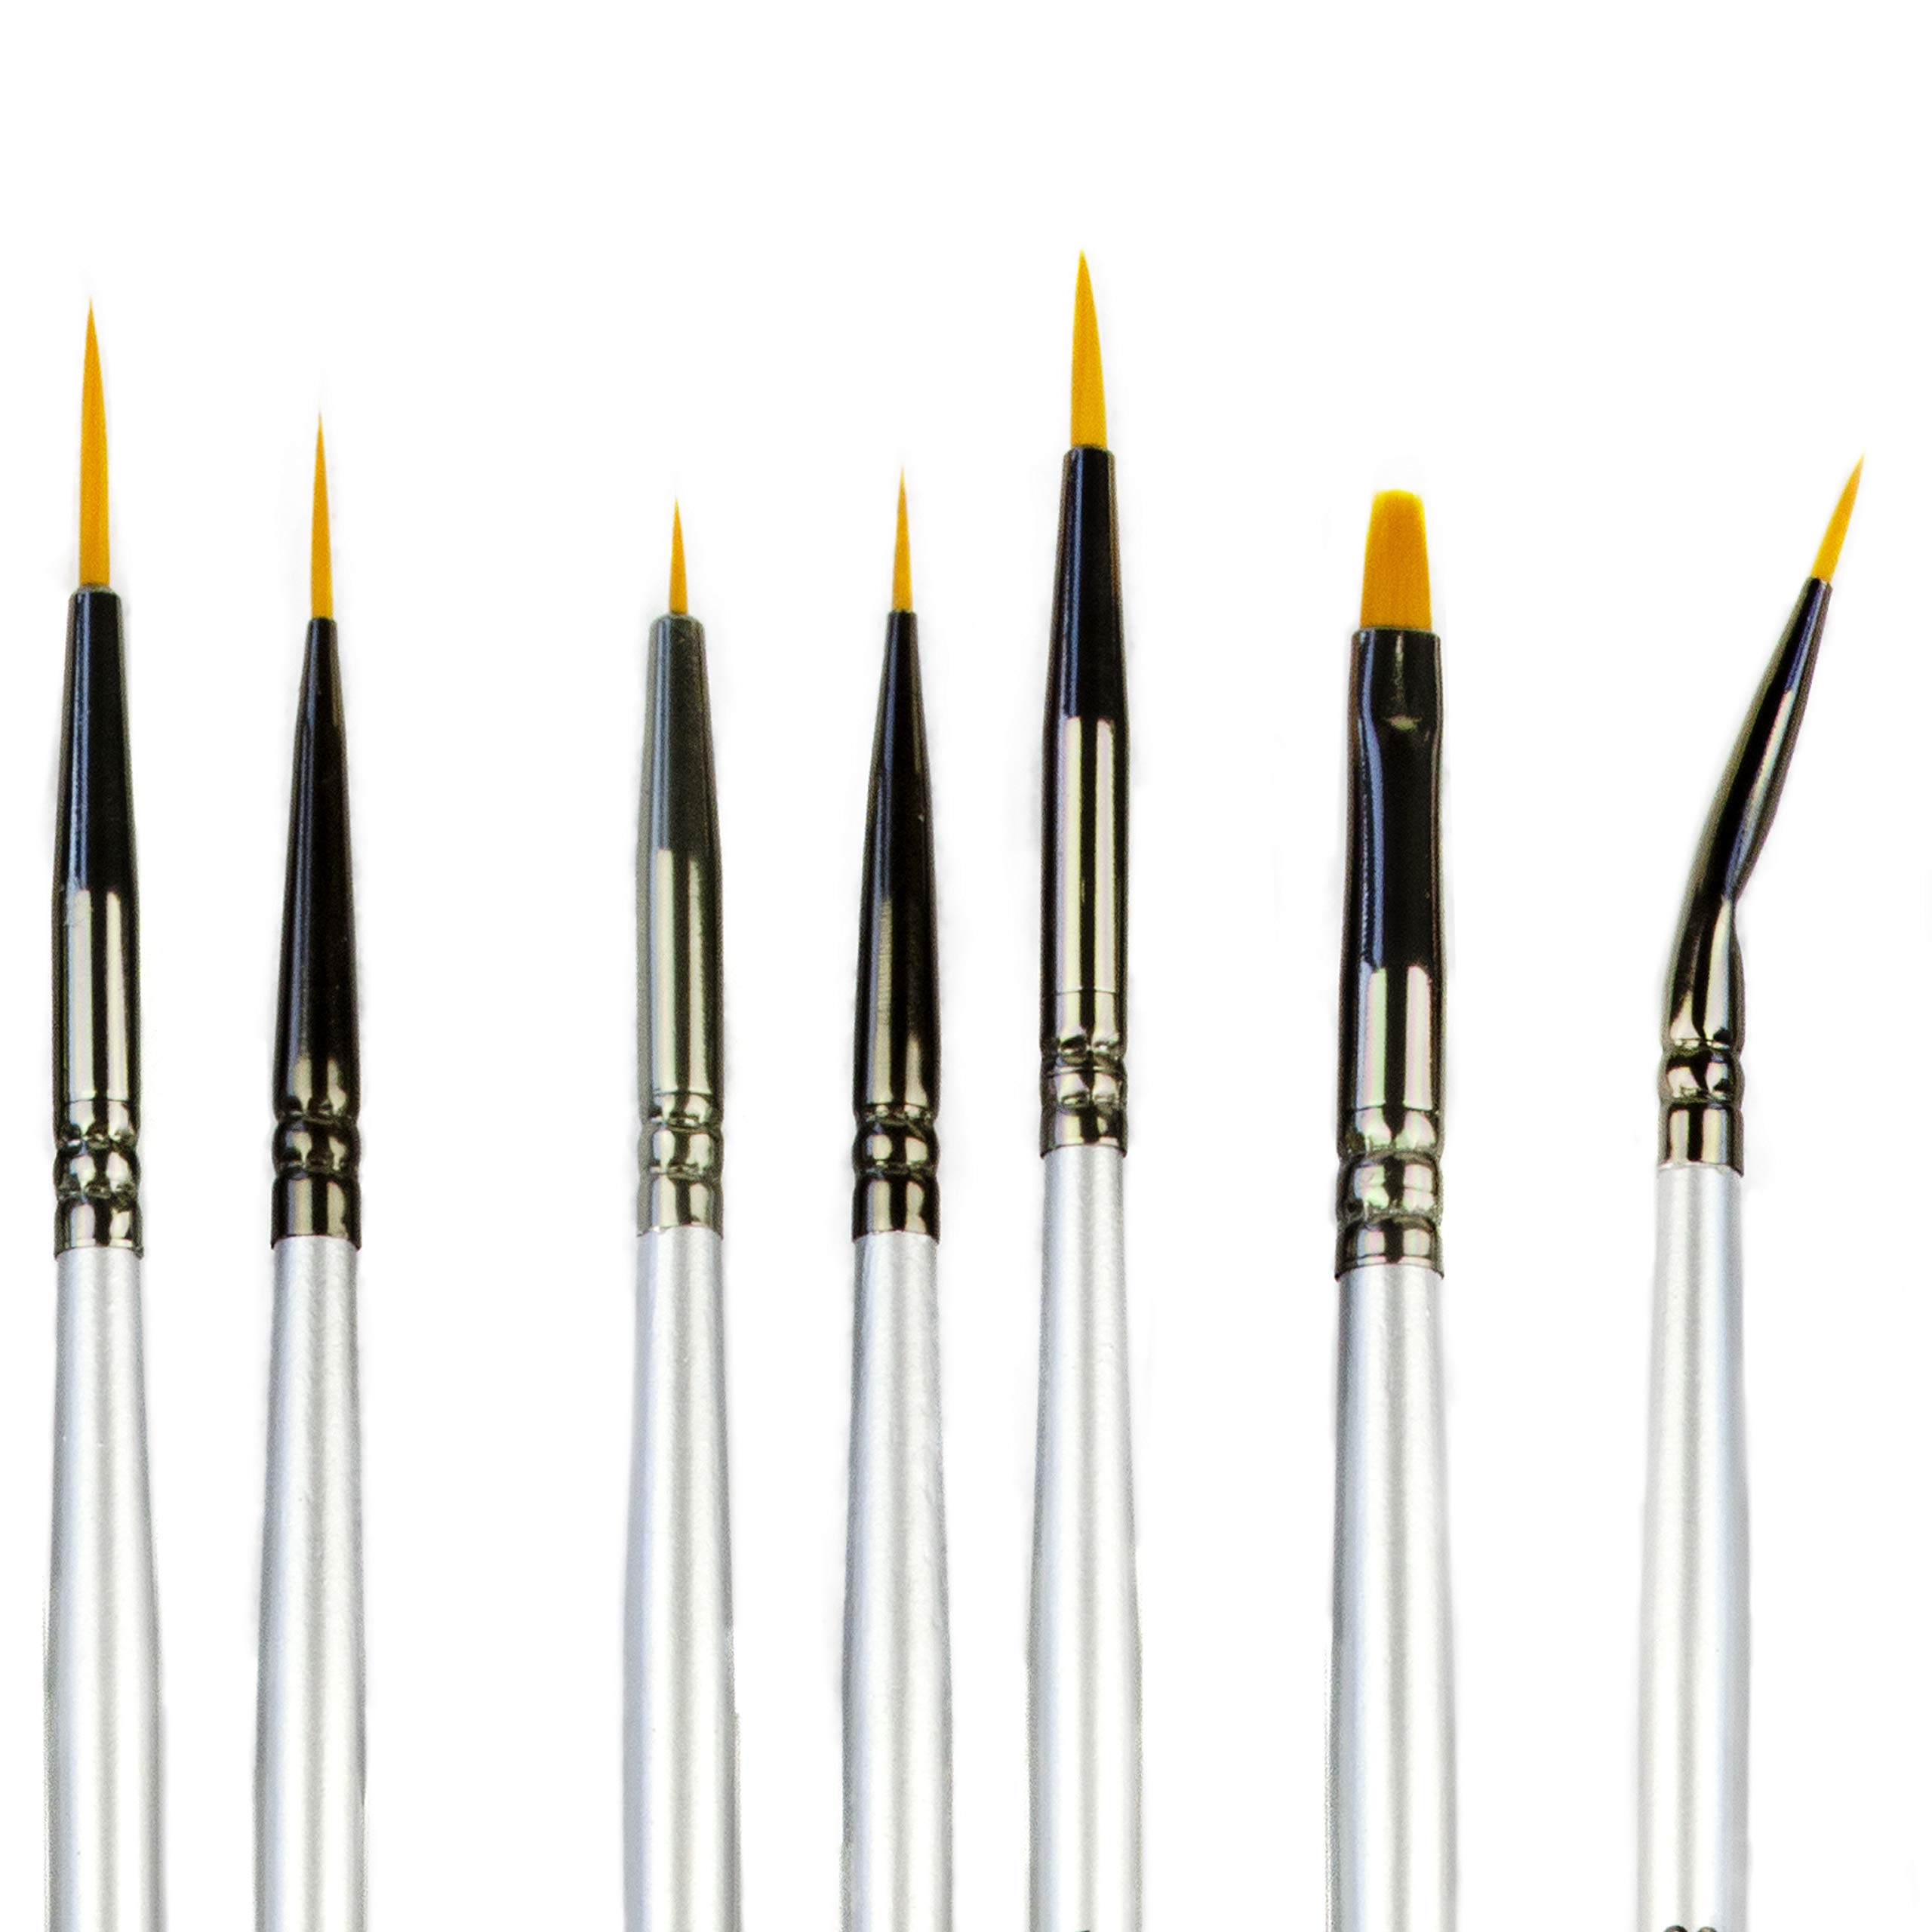 Best Model Miniature Paint Brushes - Small Detail Paint Brush Set - 7 pcs Model Paint Brushes for Miniature Painting, Fine Detailing - Tiny, Mini, Micro Fine Detail Paint brushes kits by fire in me